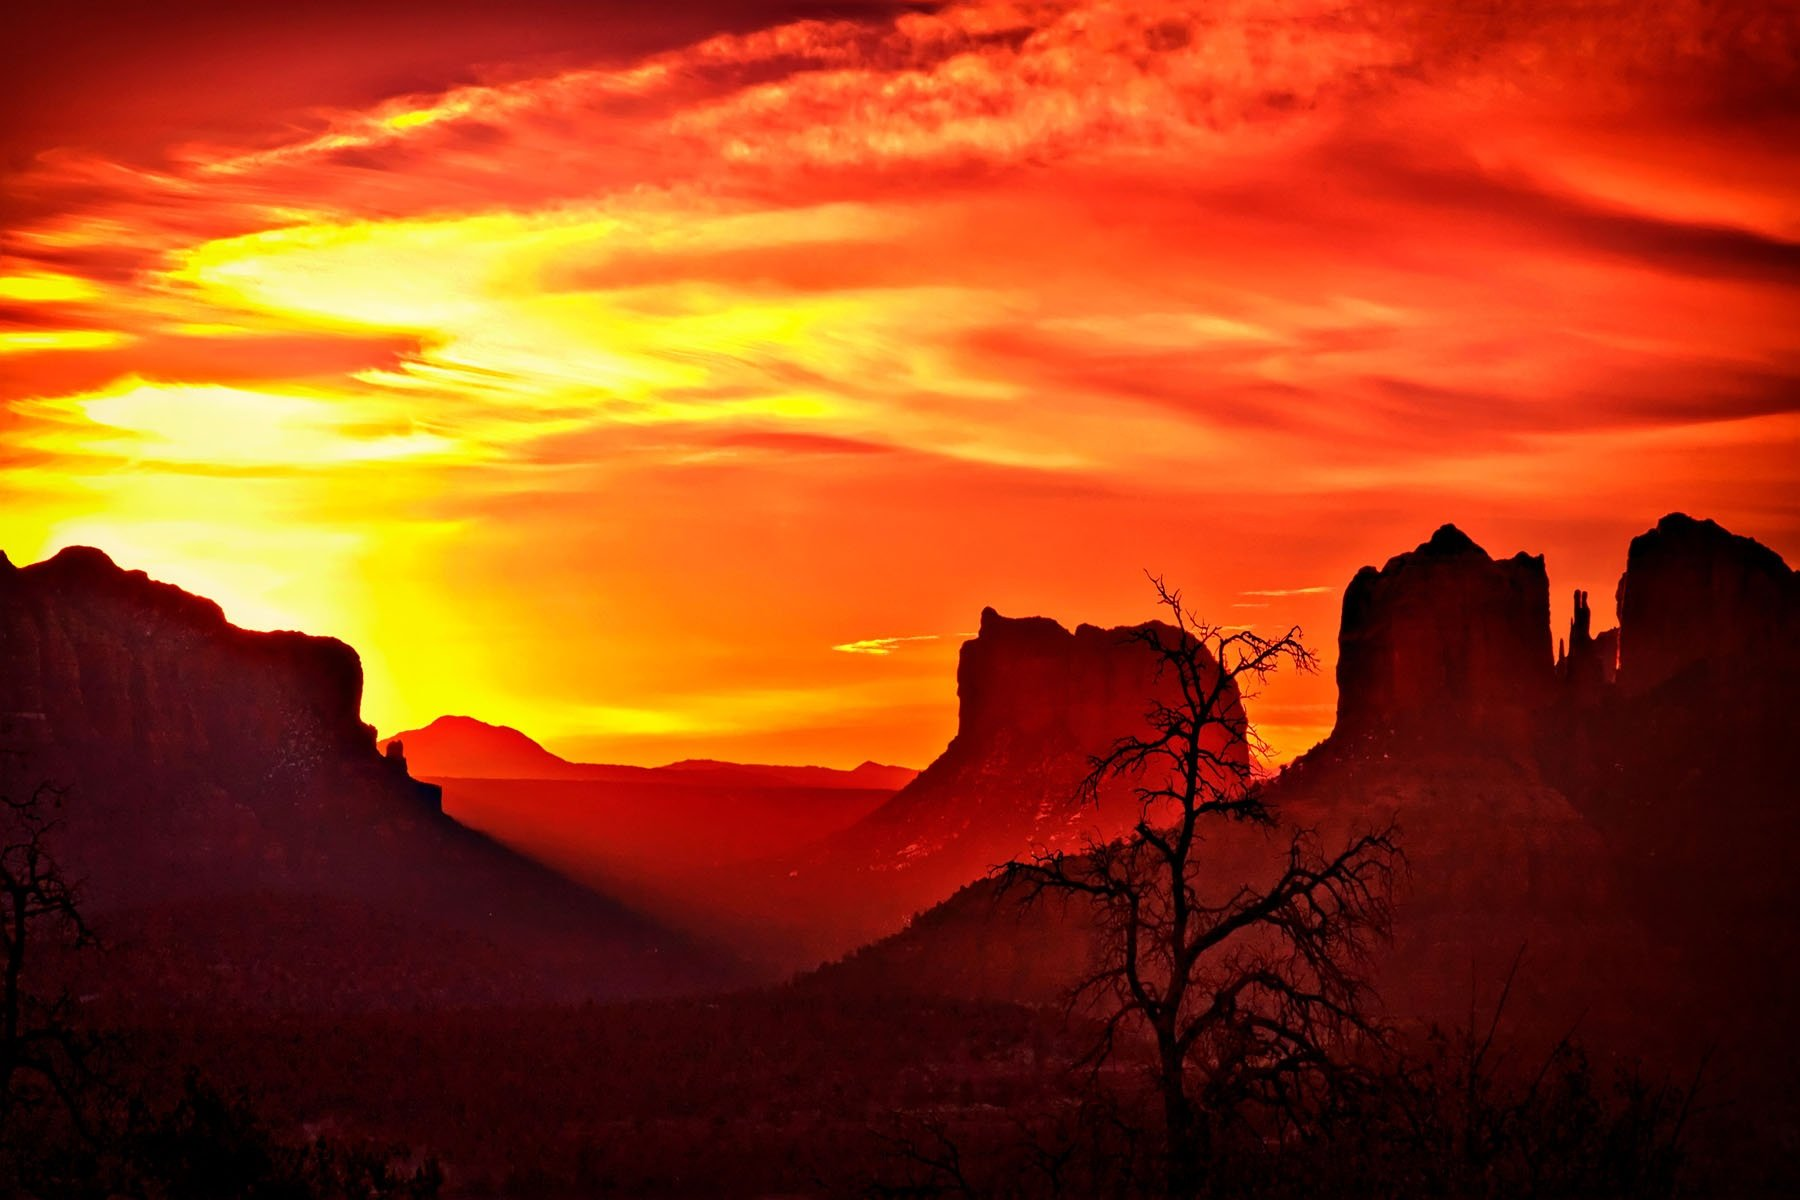 SEDONA SUNRISE - This was real luck. We had no plans to be in Sedona, but our route took us close enough we decided to spend the night there. We got an early start the next morning, and this was our reward.